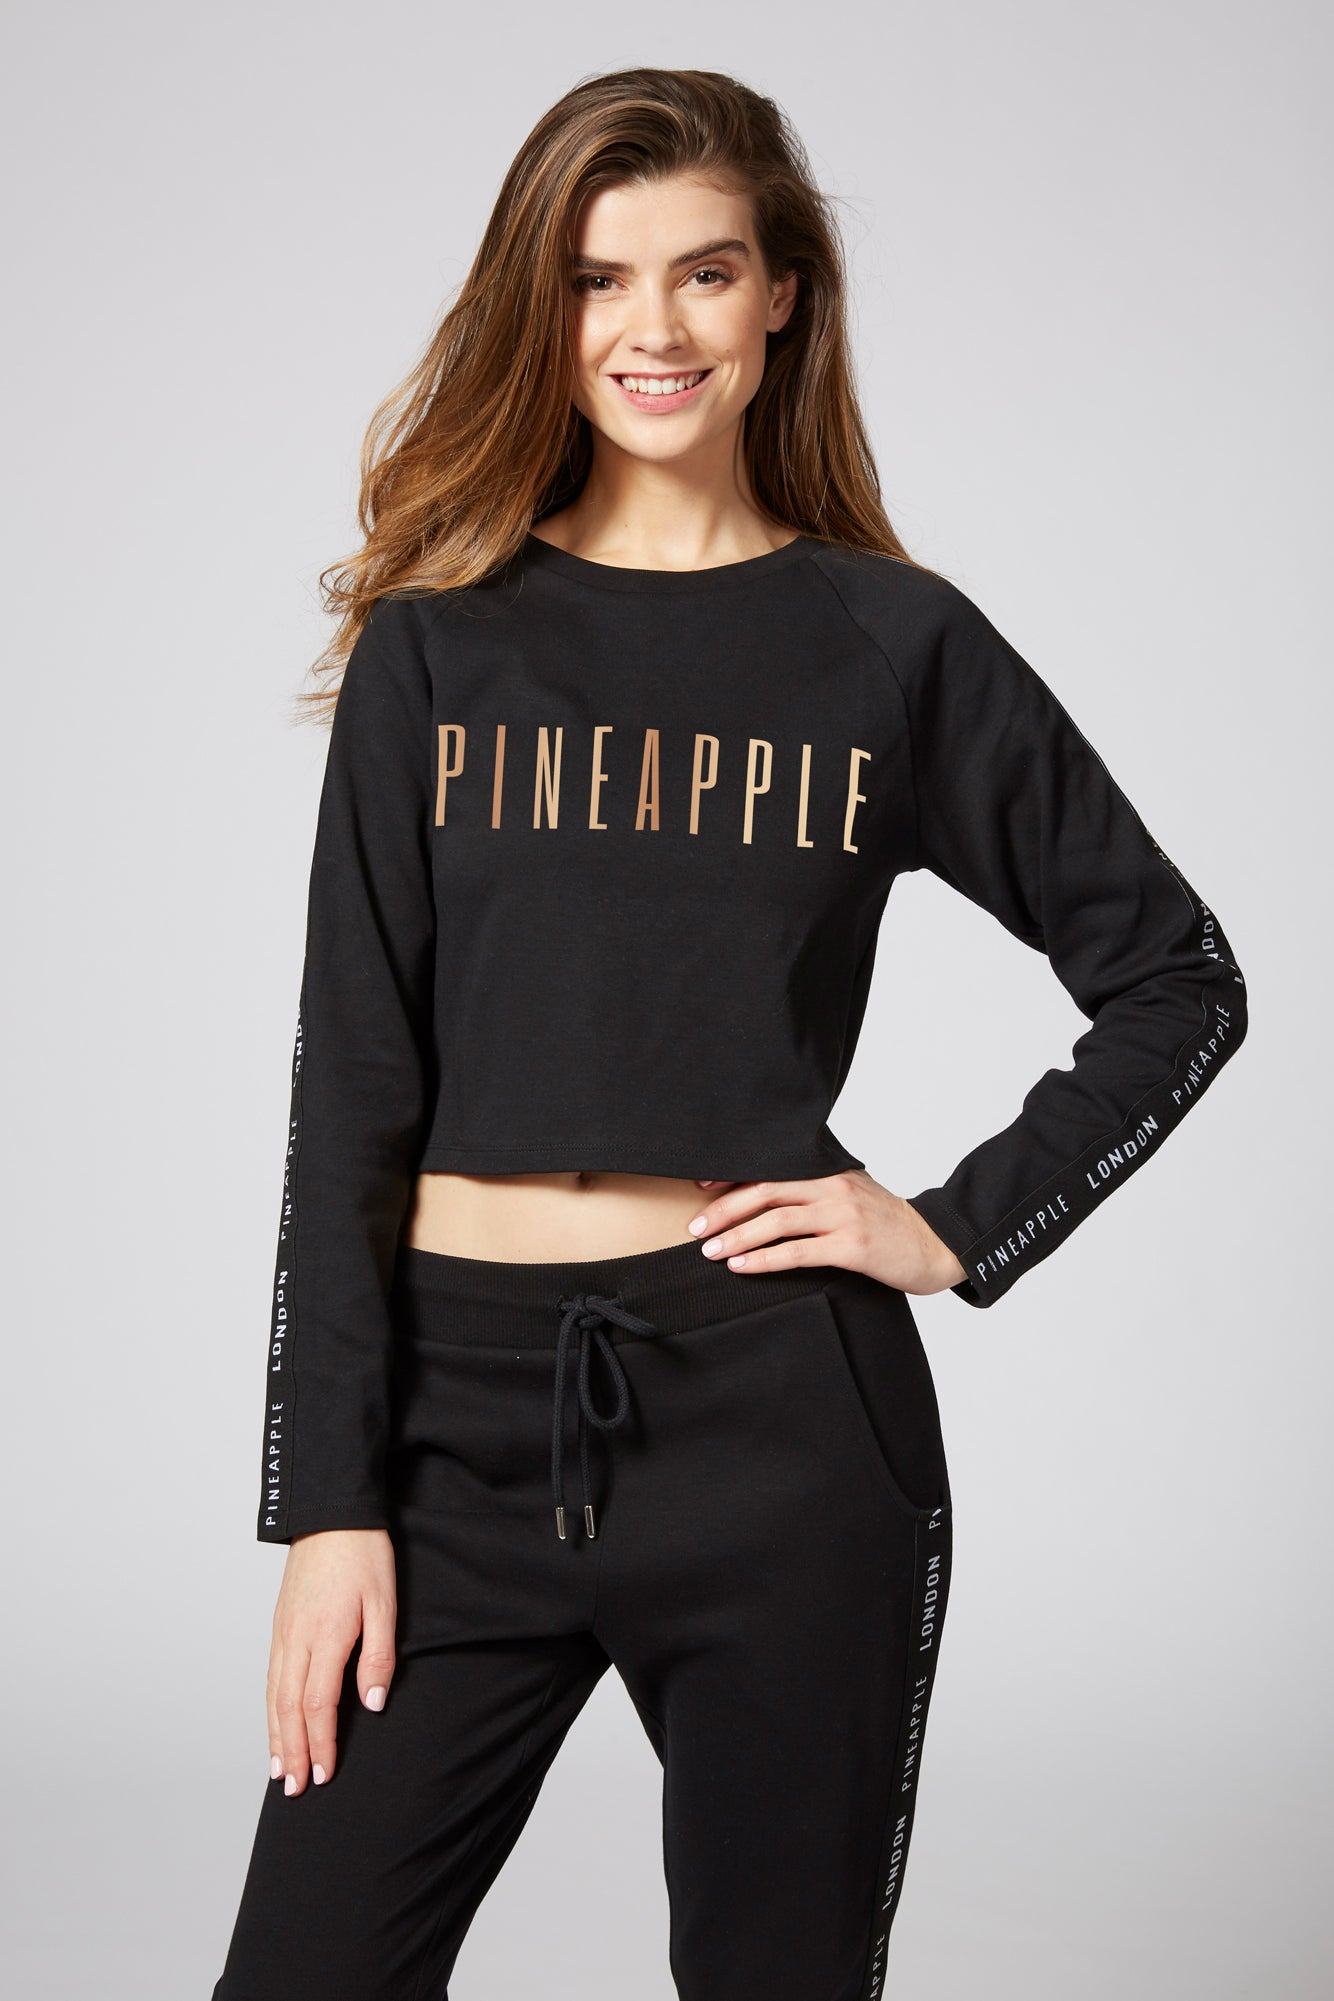 Pineapple Dancewear Women's Black Jacquard Crop Jumper